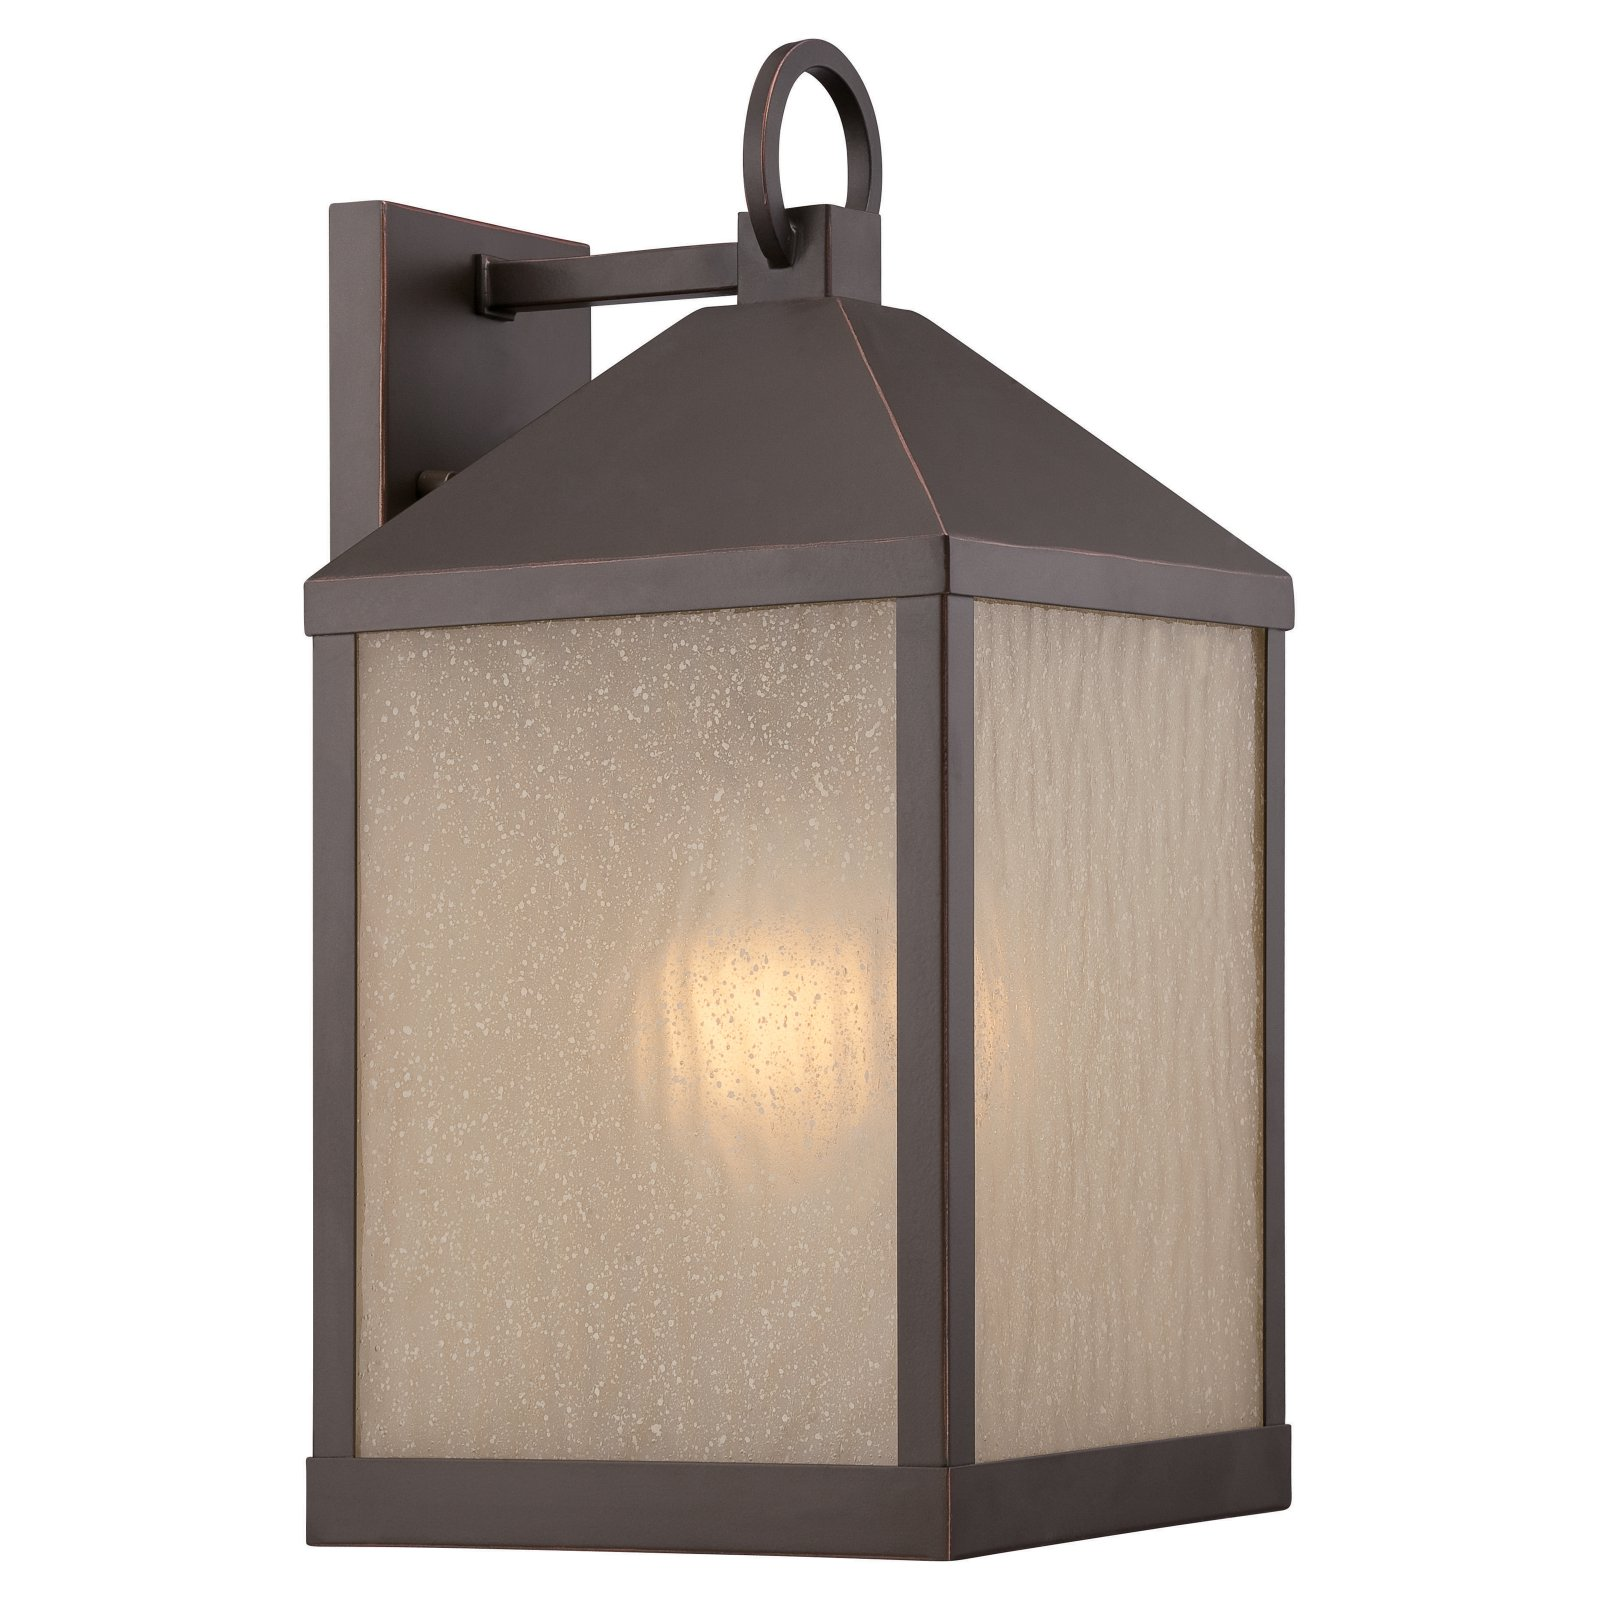 Nuvo Haven 62-66 Outdoor Wall Sconce